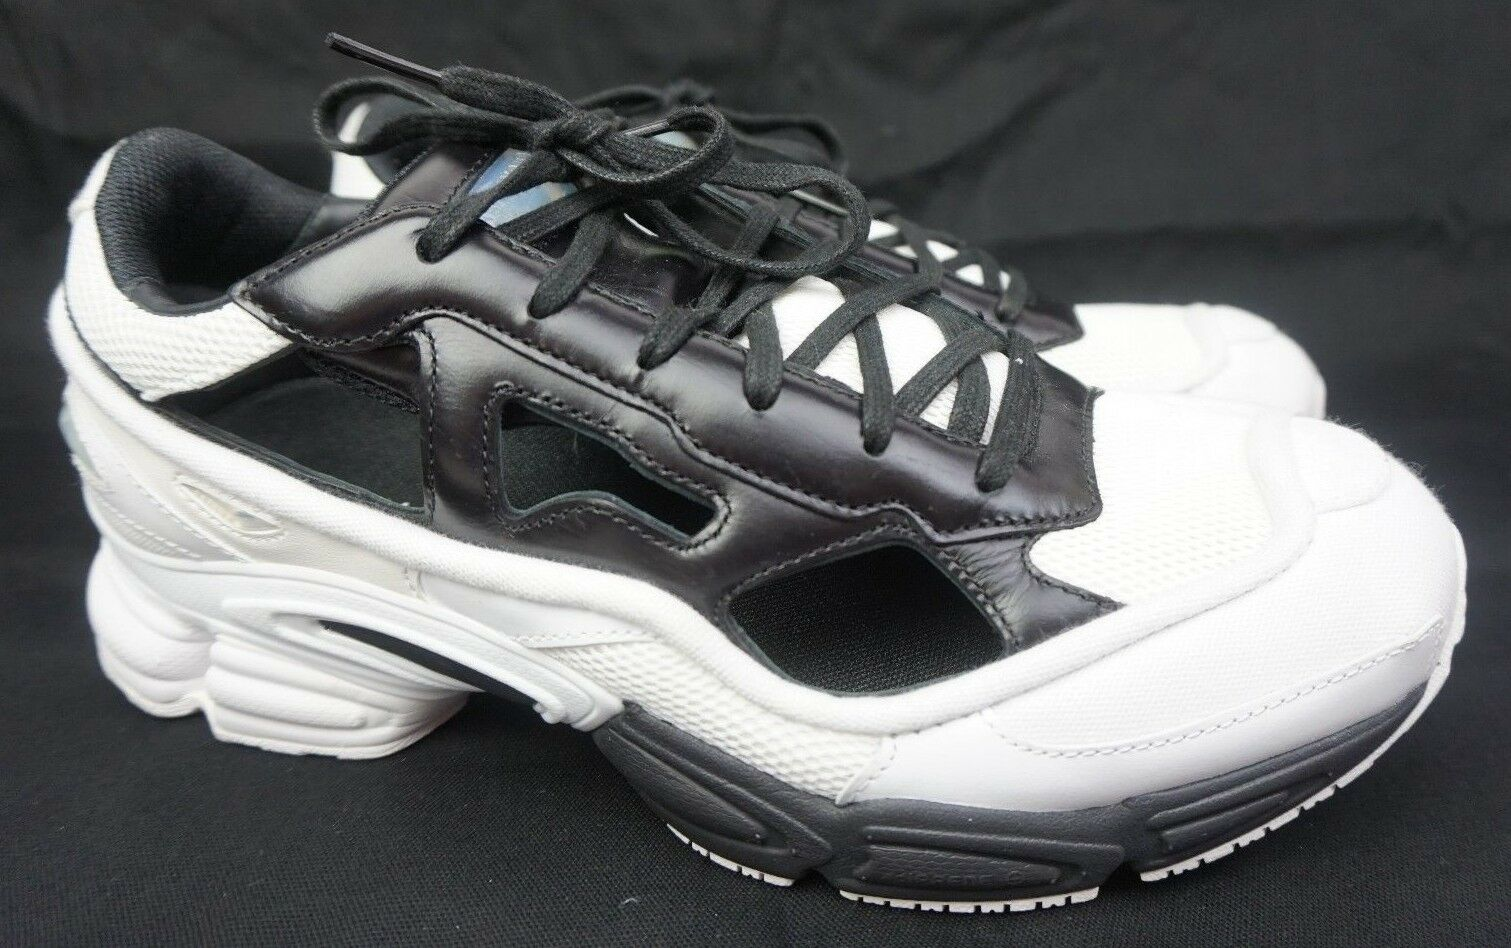 Adidas x Raf Simons Men's Replicant Ozweego Trainer Sneakers White Shoes Size 10